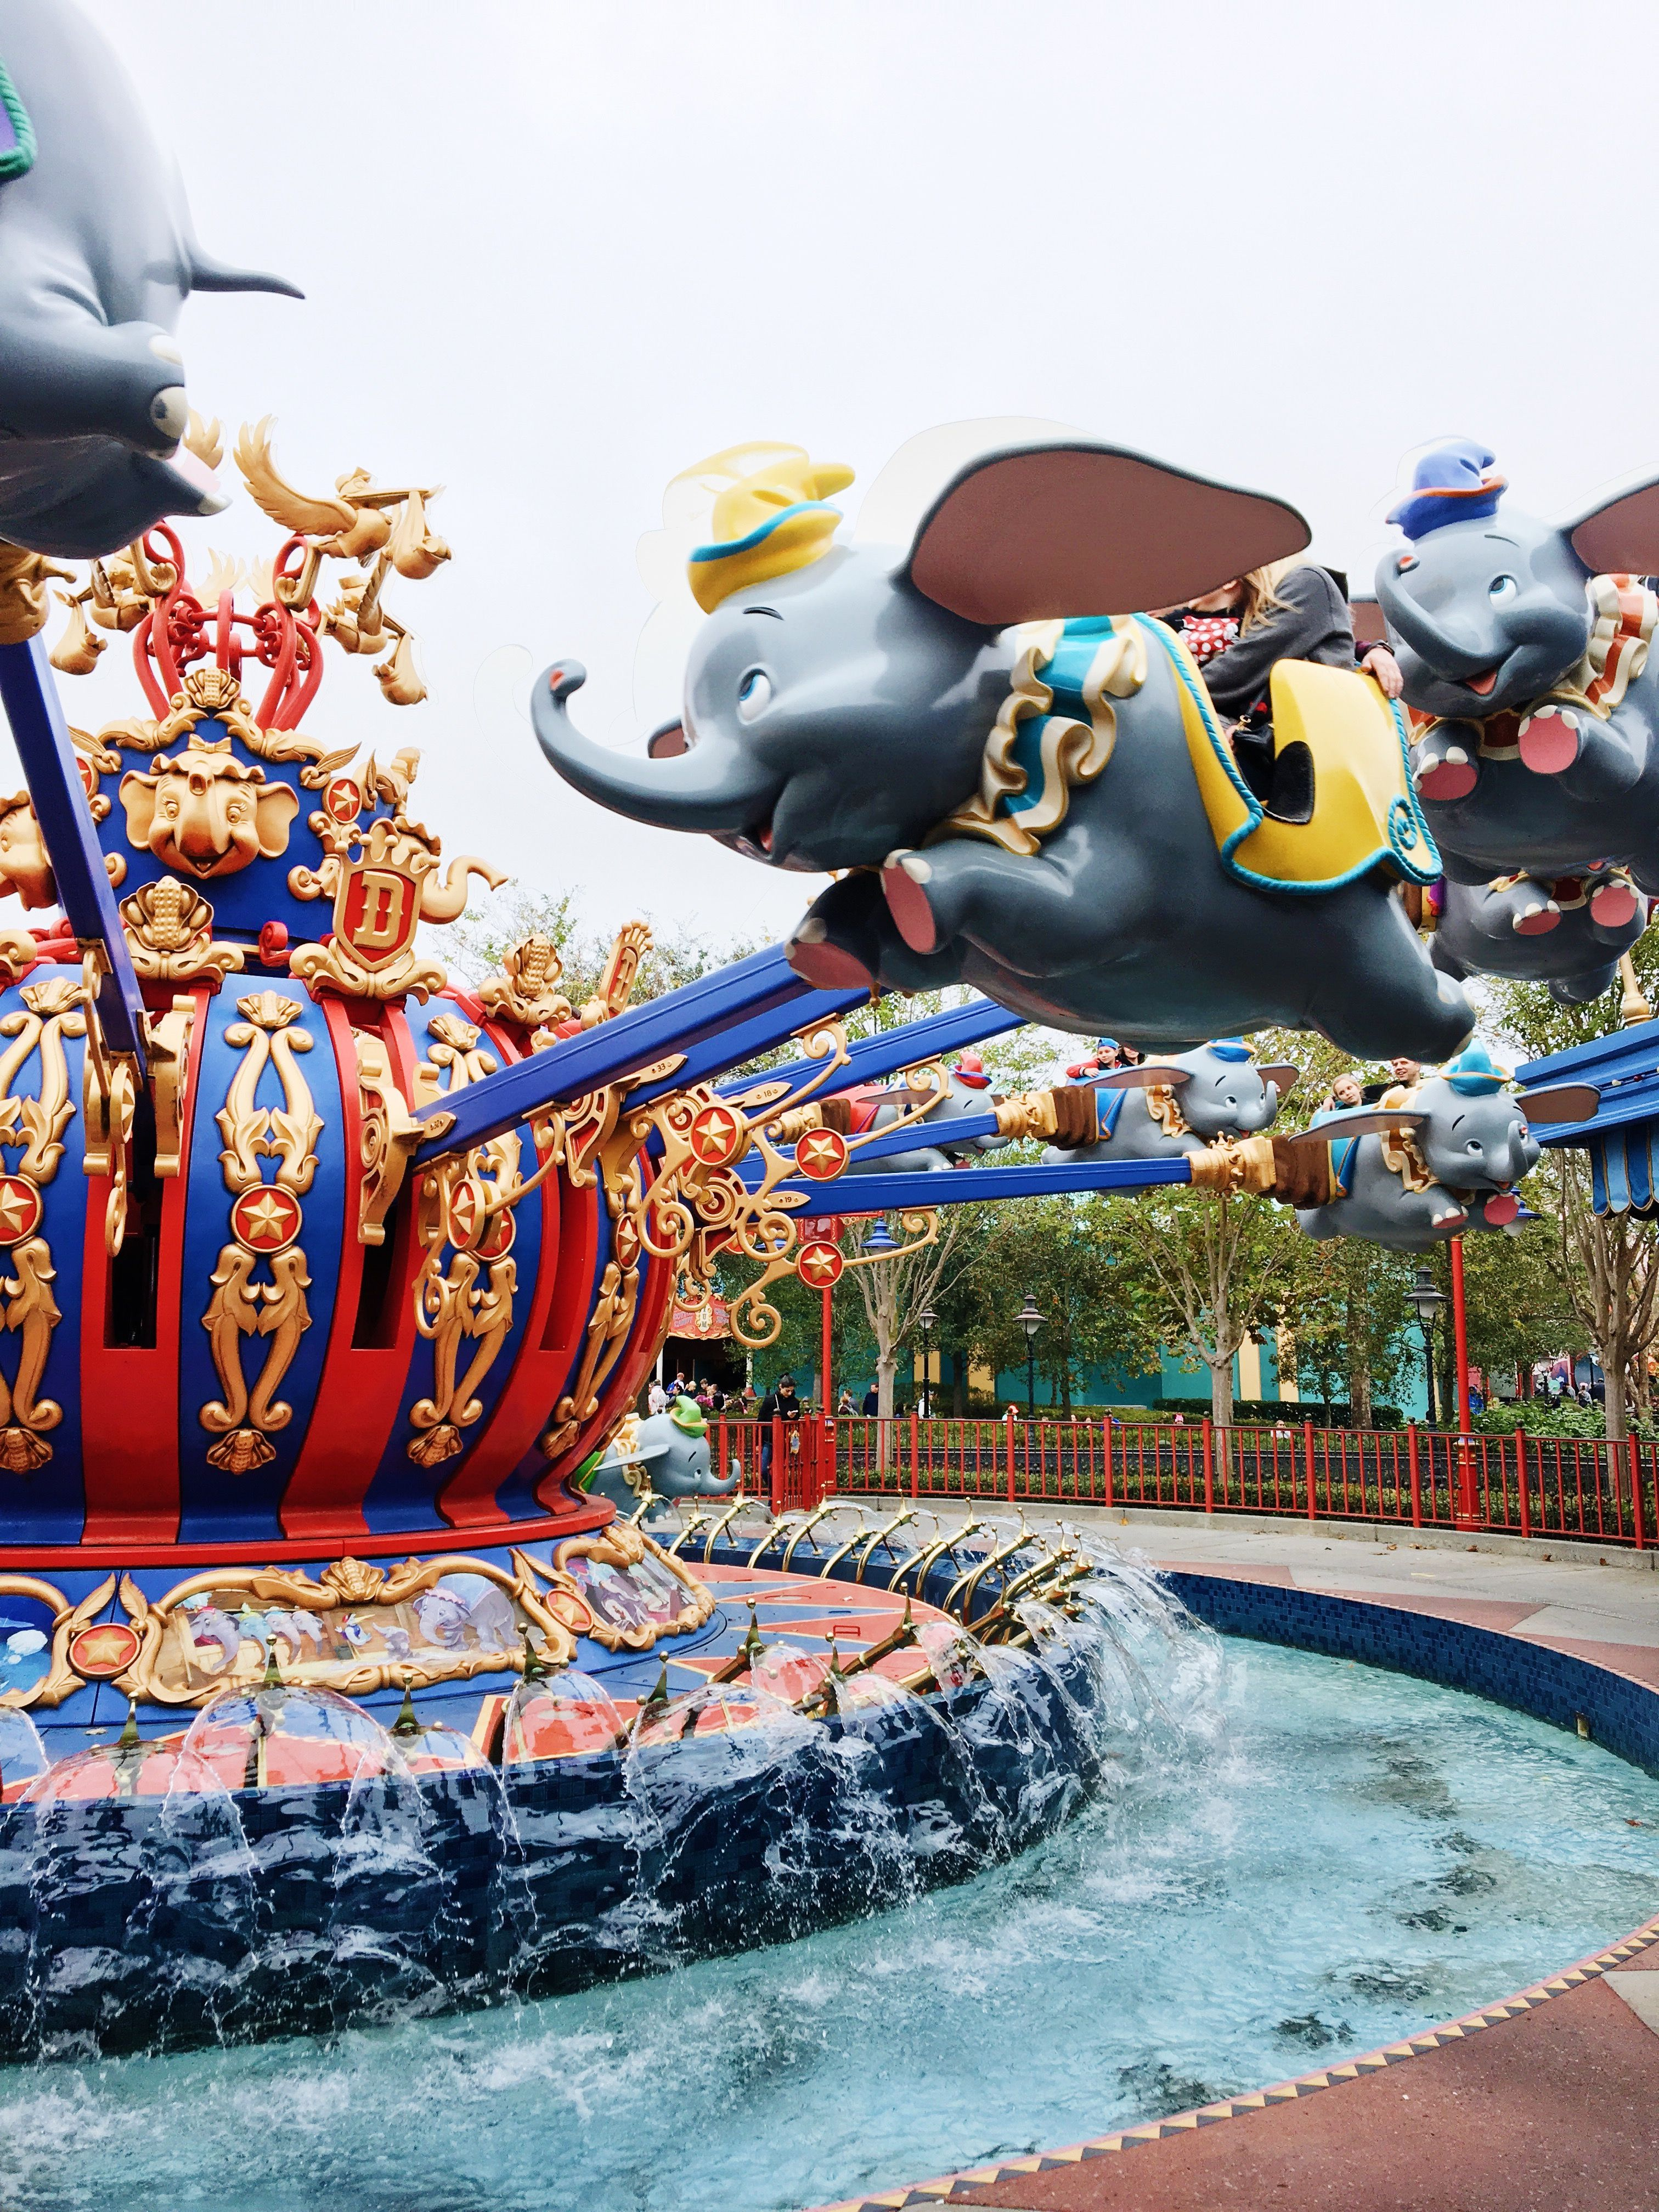 540c77b3ca The Dumbo ride- I love riding this because I feel like I'm flying and I  love the view around the ride also!!!